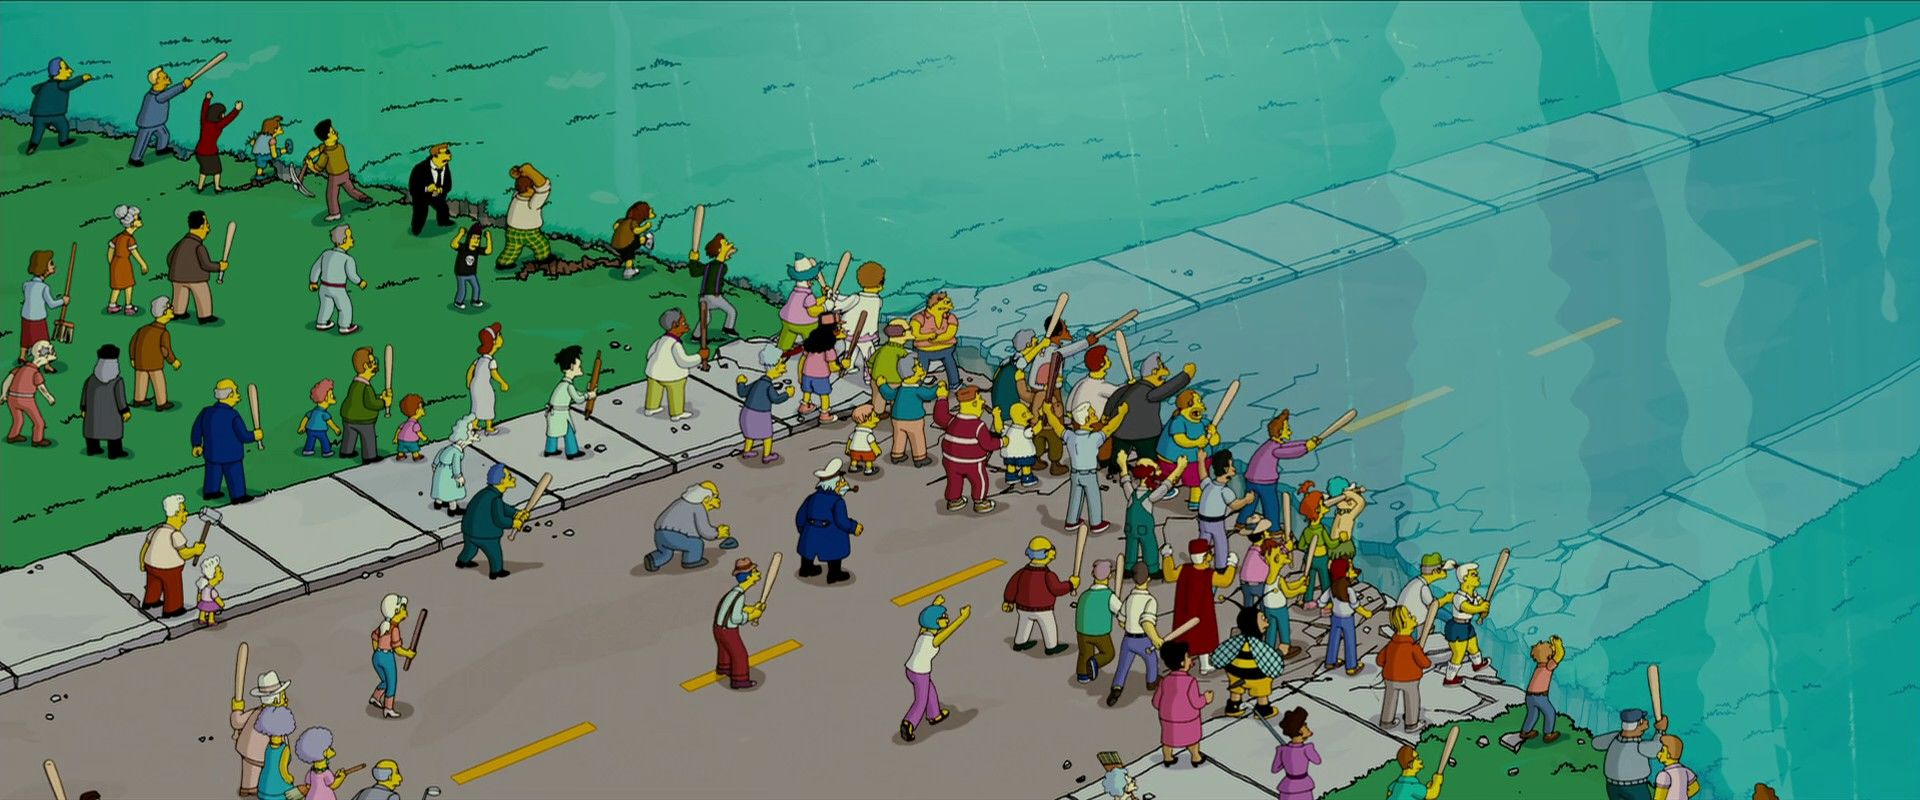 The Simpsons - The Simpsons Movie extra